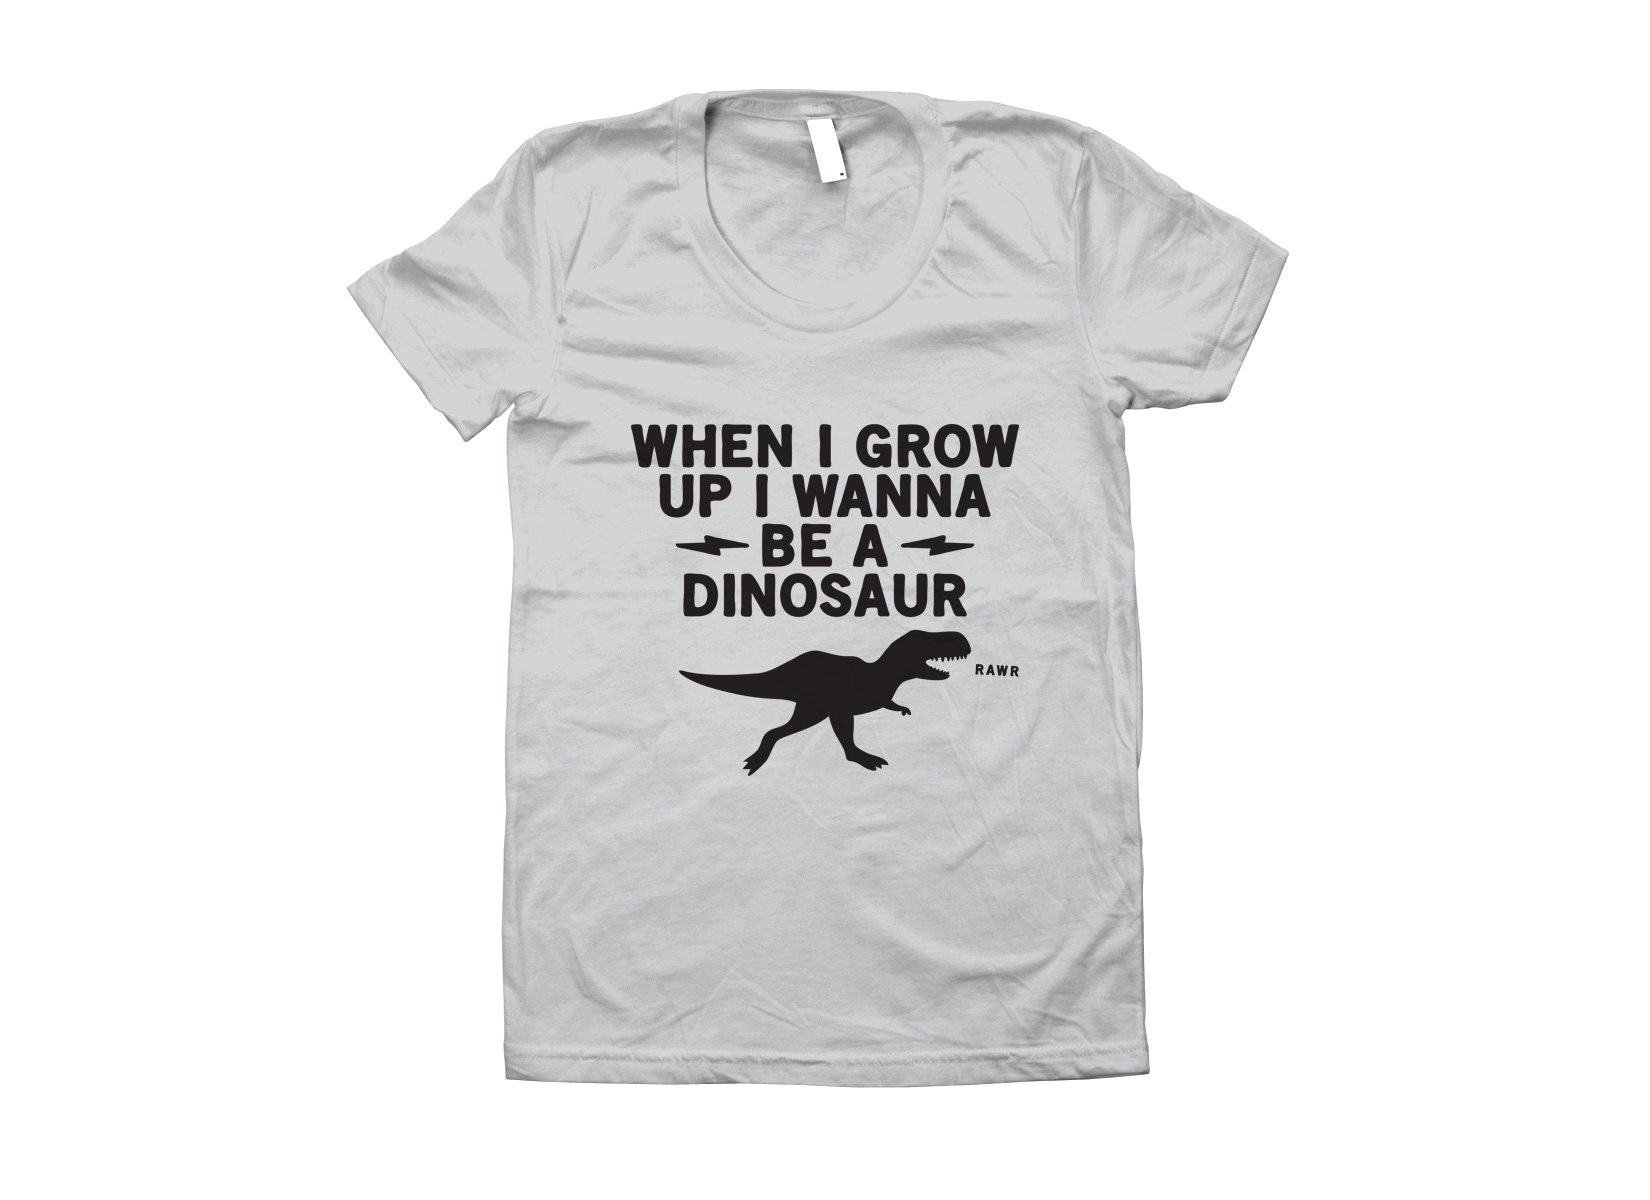 When I Grow Up I Wanna Be A Dinosaur on Juniors T-Shirt